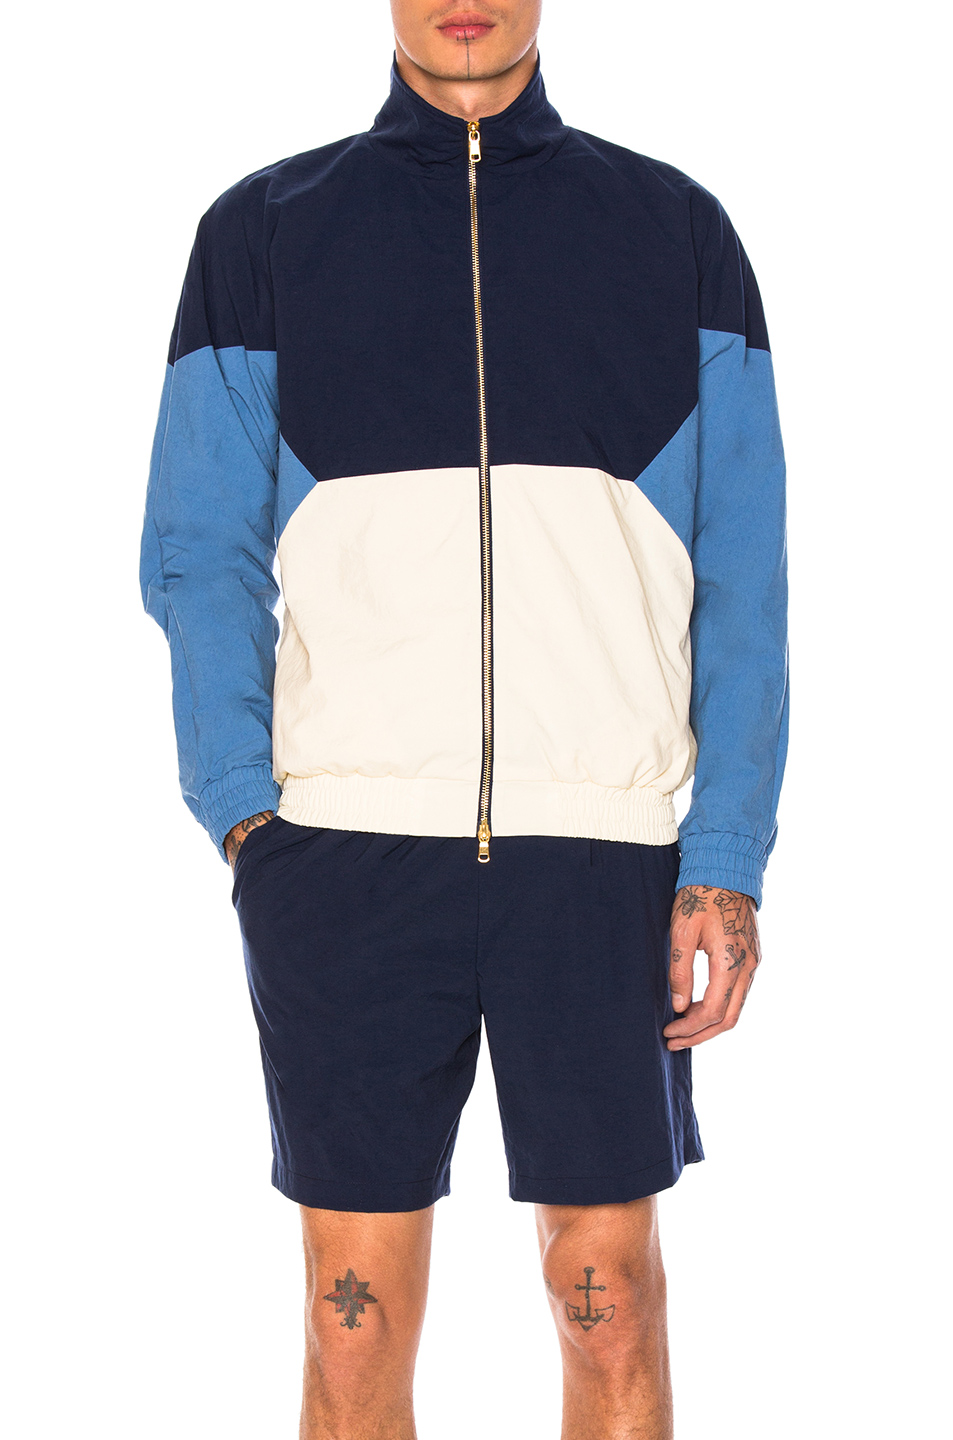 Photo of Aime Leon Dore Full Zip Windbreaker in Blue - shop Aime Leon Dore menswear